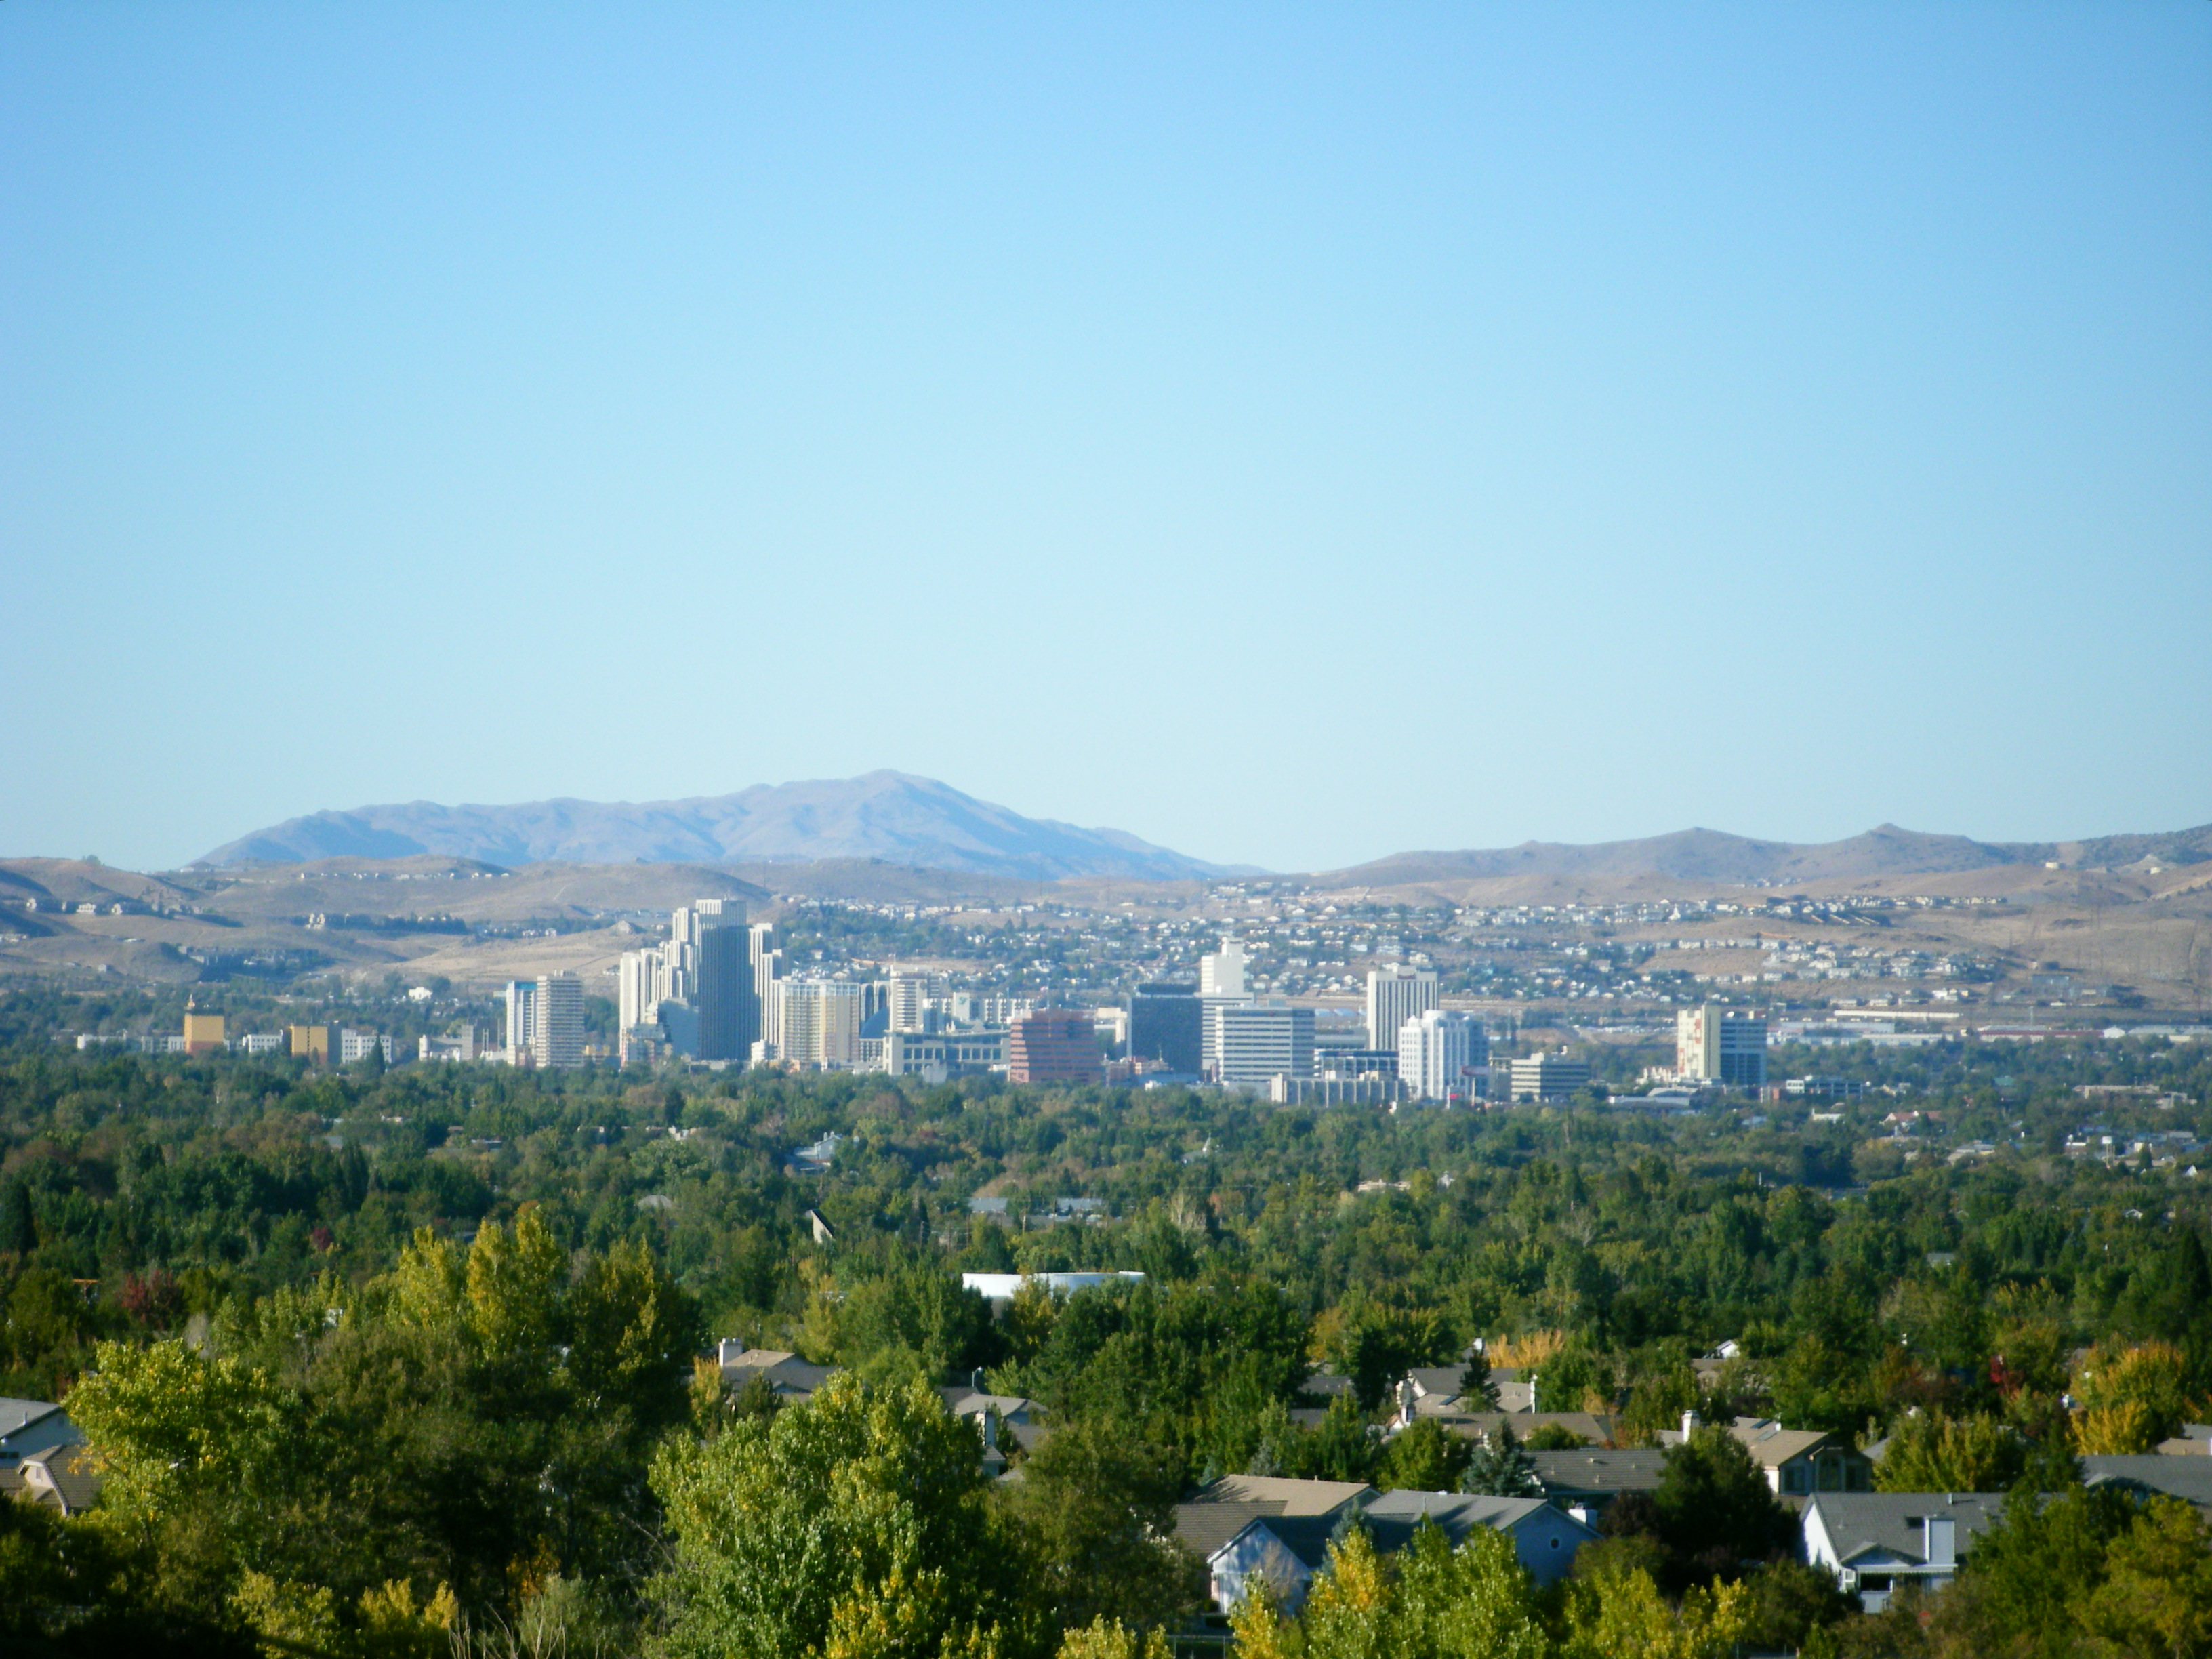 Reno, Nevada - Wikipedia on zip codes by map of reno, zip codes in reno nevada, zip code nv 89428, zip code map of reno nevada,